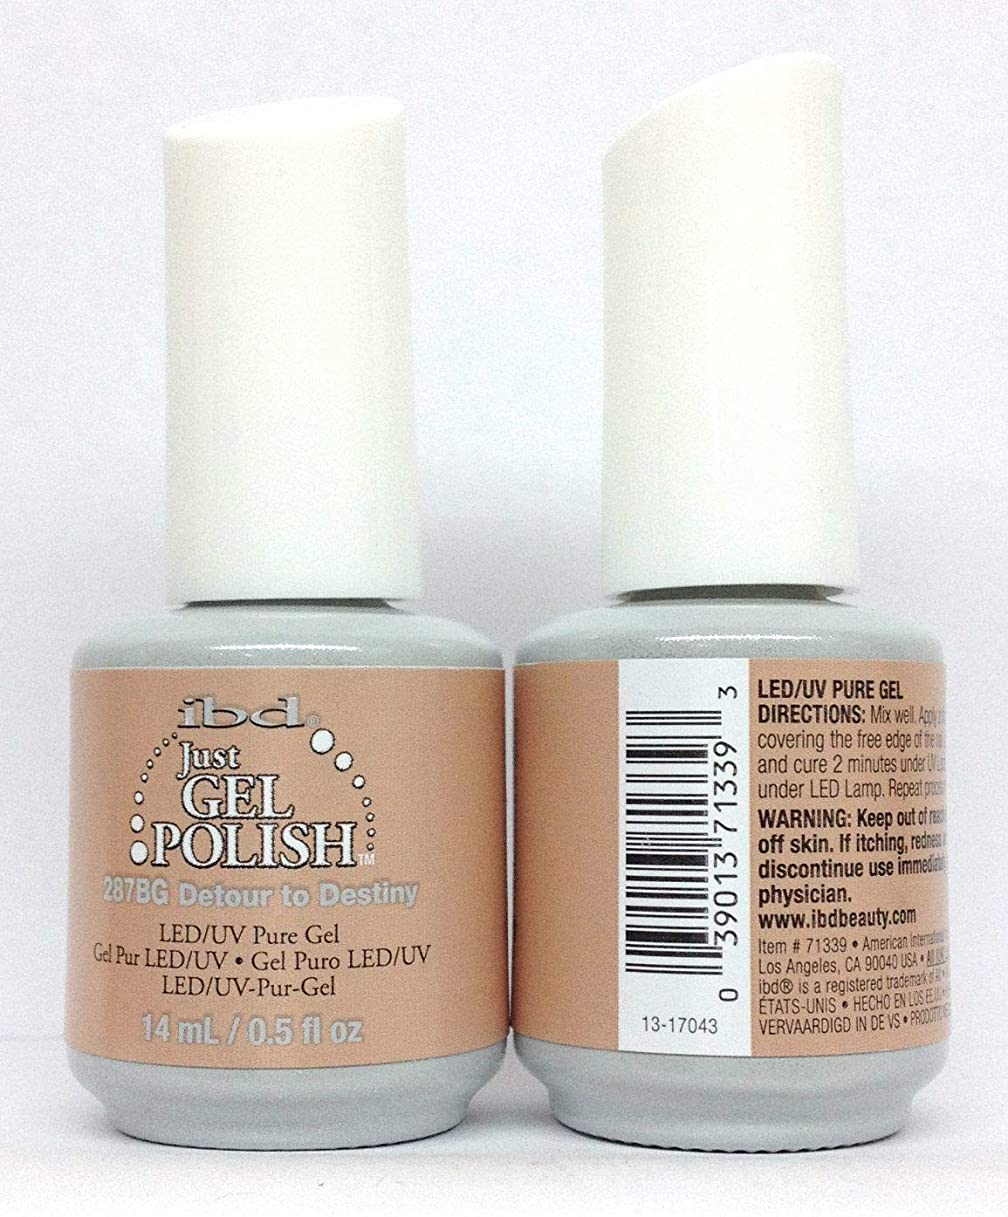 役員精査水曜日ibd Just Gel Polish - Serengeti Soul Collection - Detour To Destiny - 14ml / 0.5oz